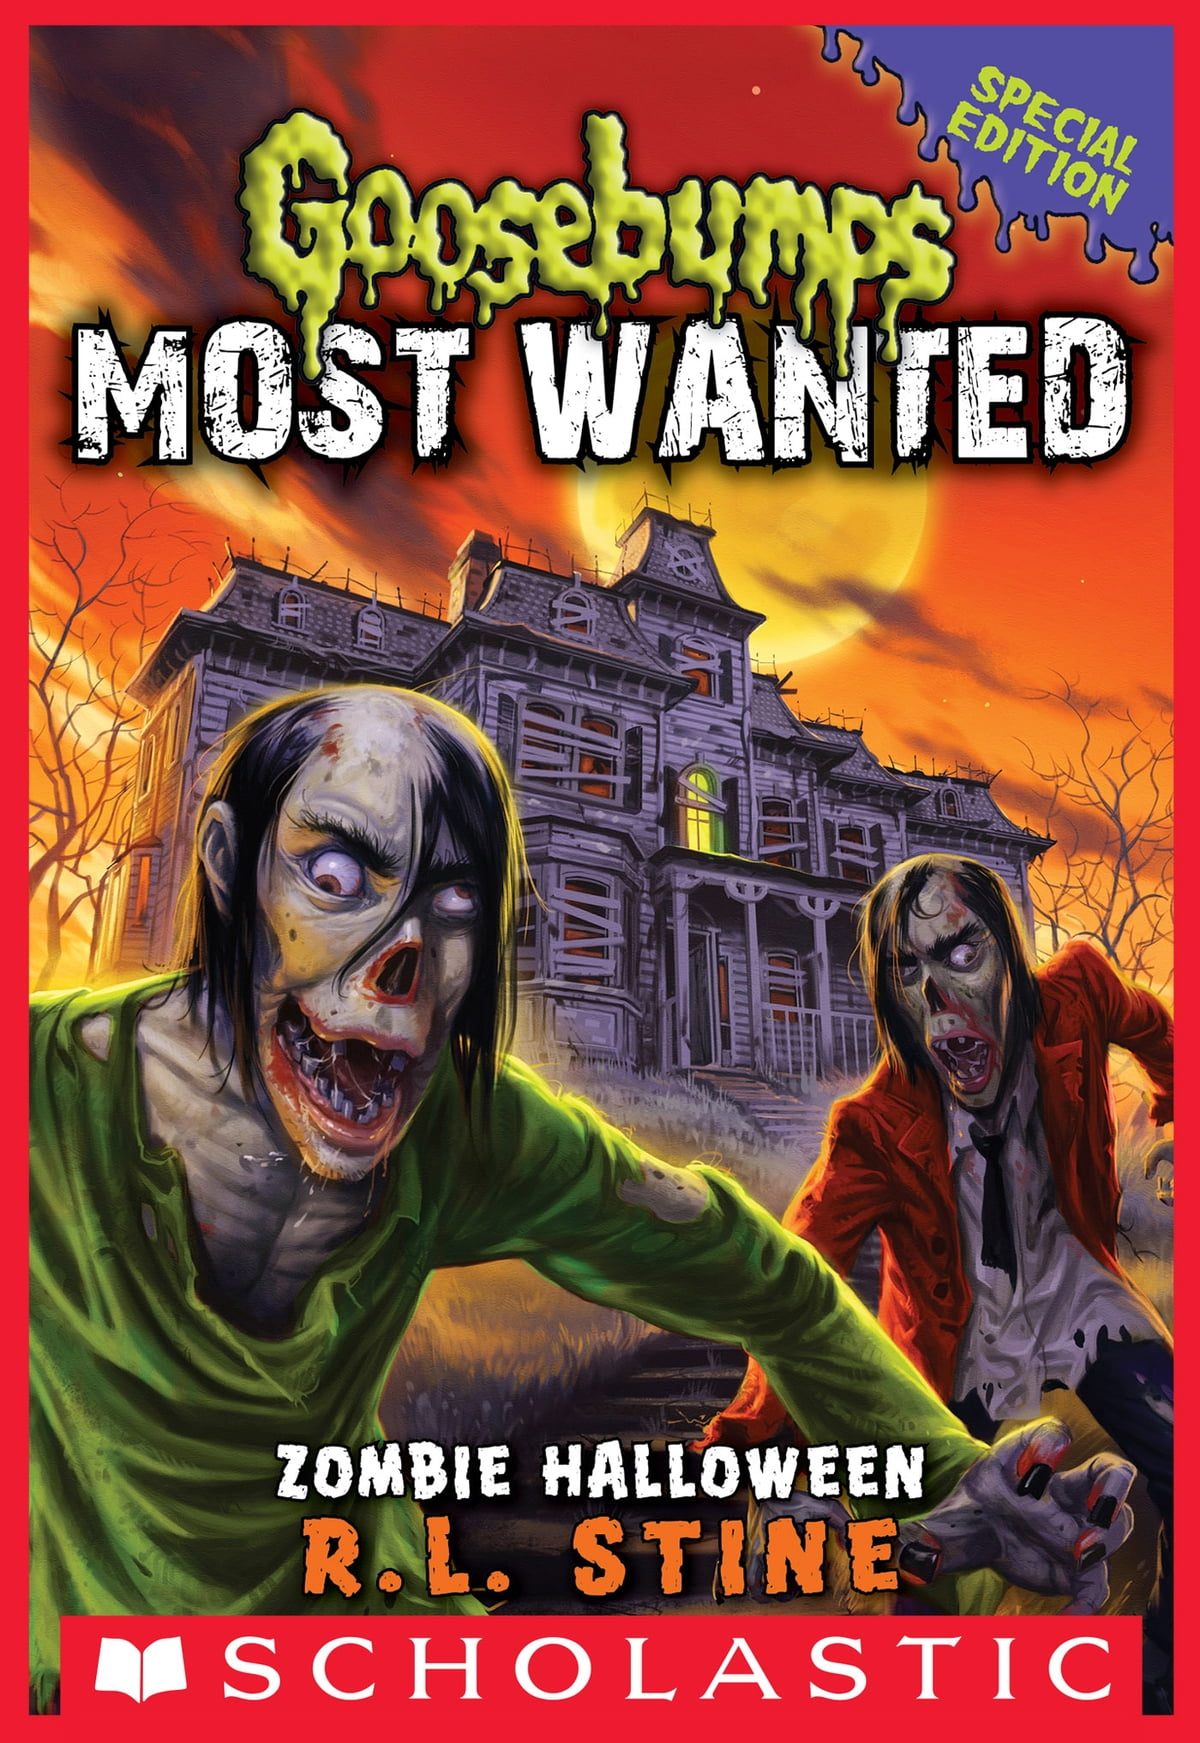 Wanted slappy pdf most goosebumps of son